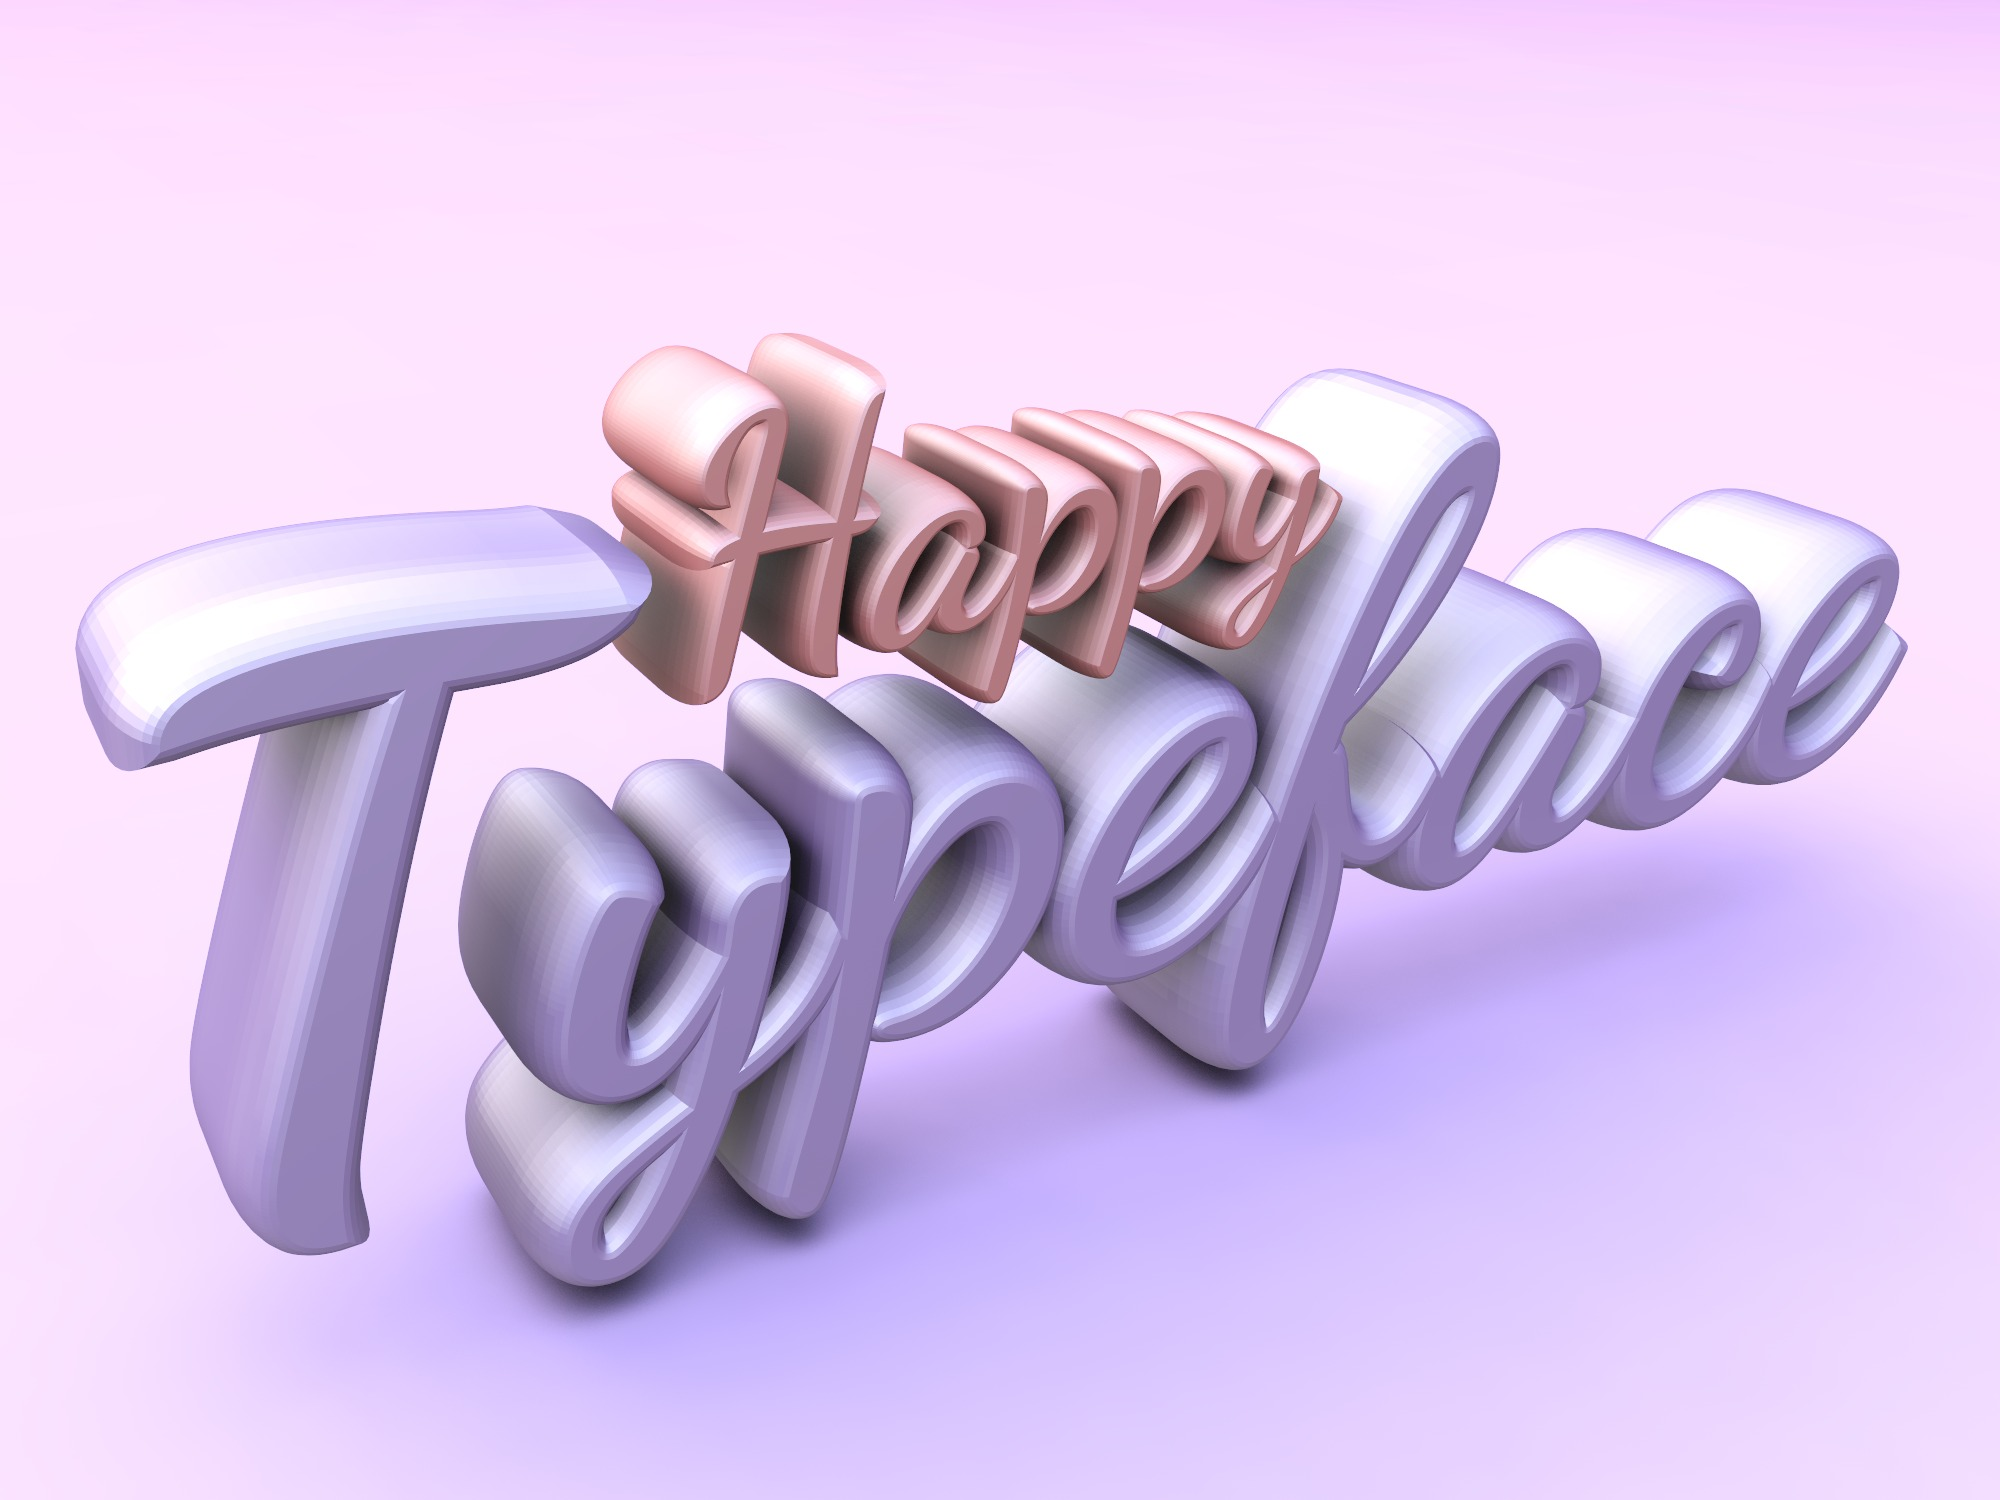 Happy Typeface - 3D design by drafts Jun 23, 2018